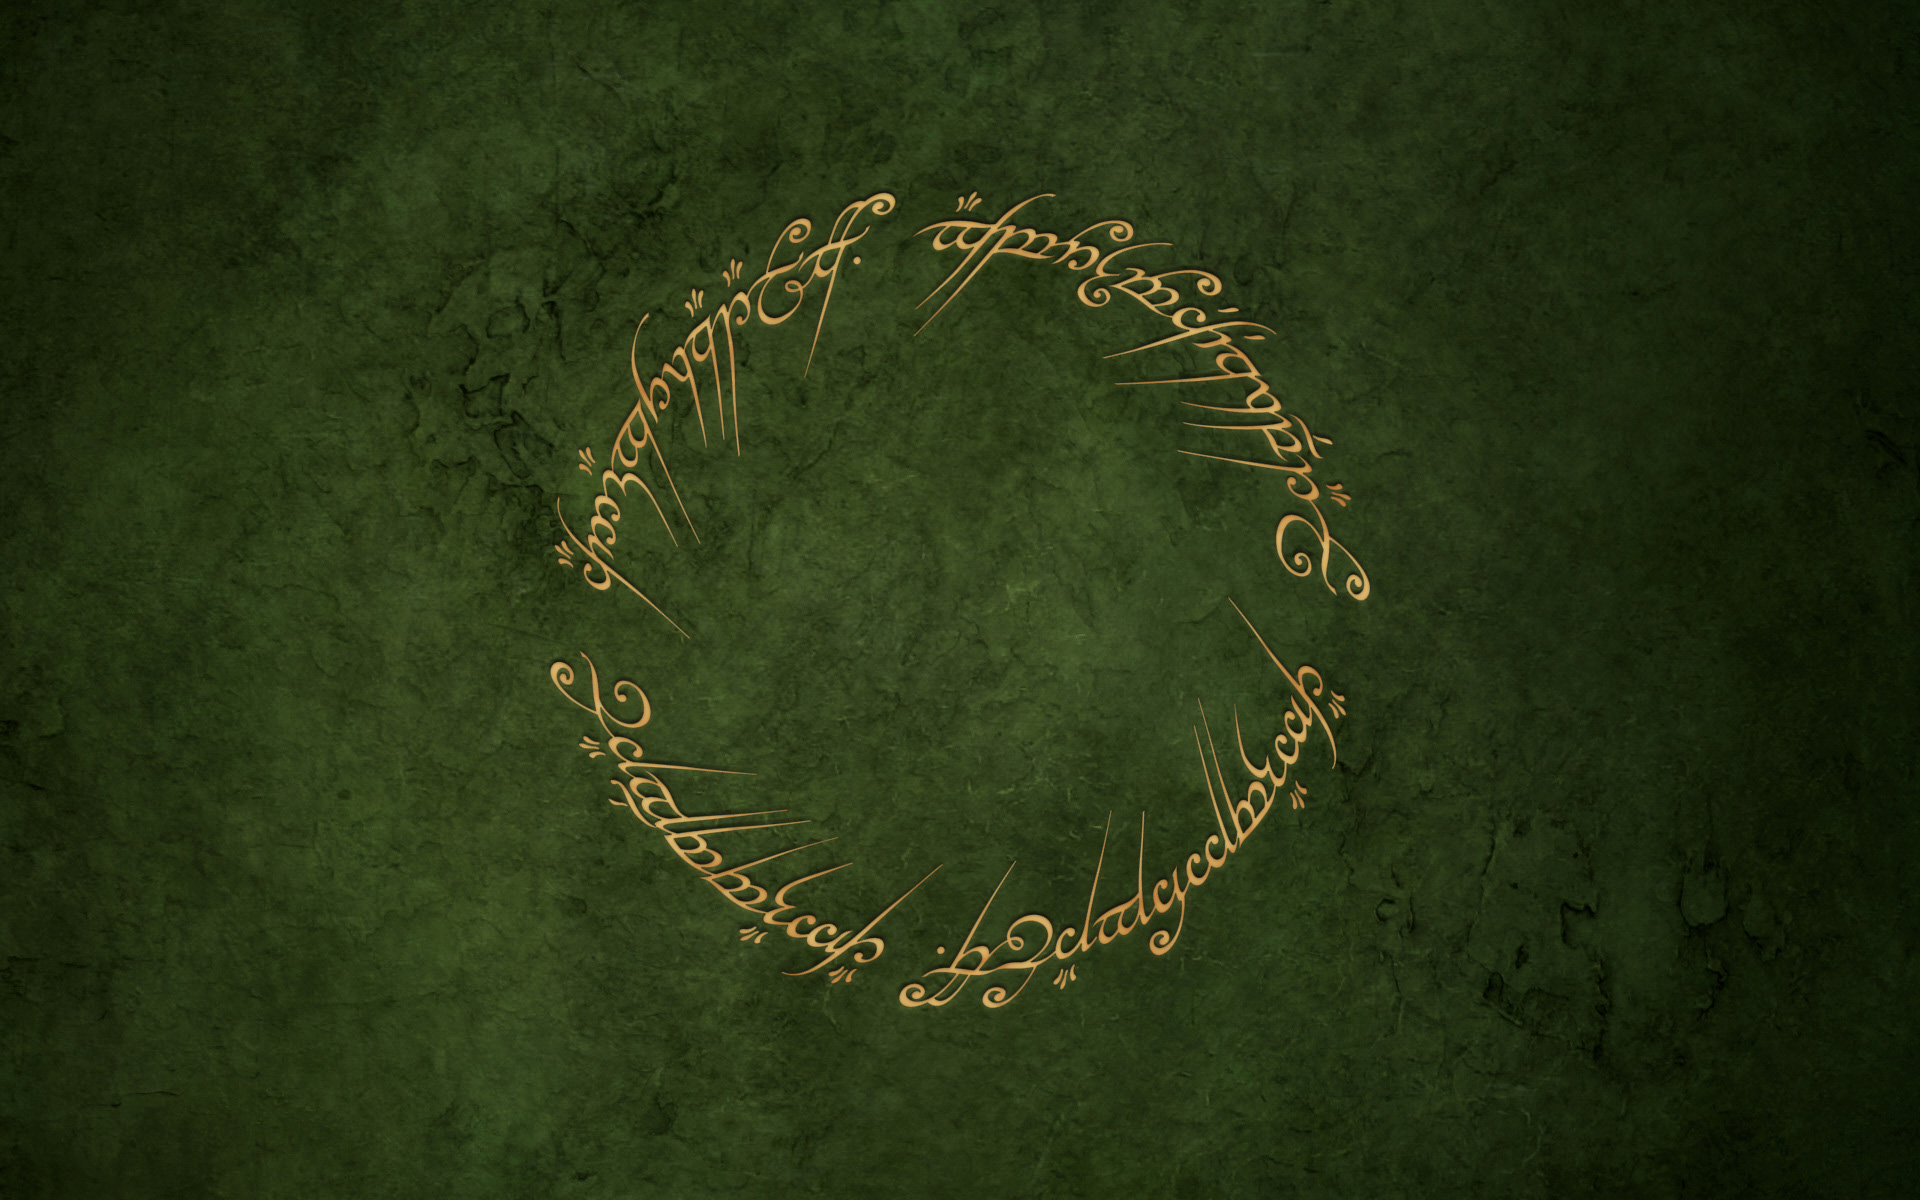 The Lord of the Rings Res: 1920x1200 / Size:529kb. Views: 48956